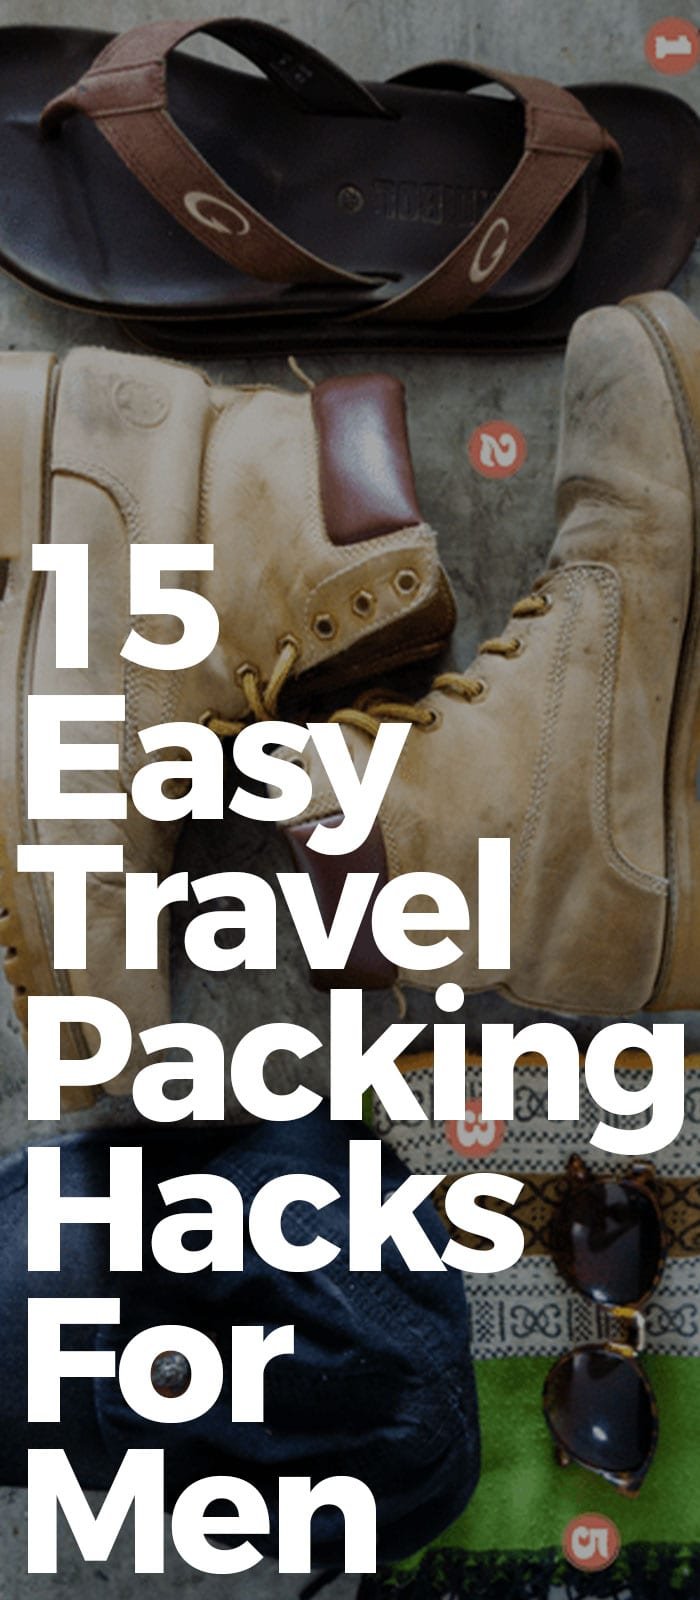 15 Easy Travel Packing Hacks For Men.